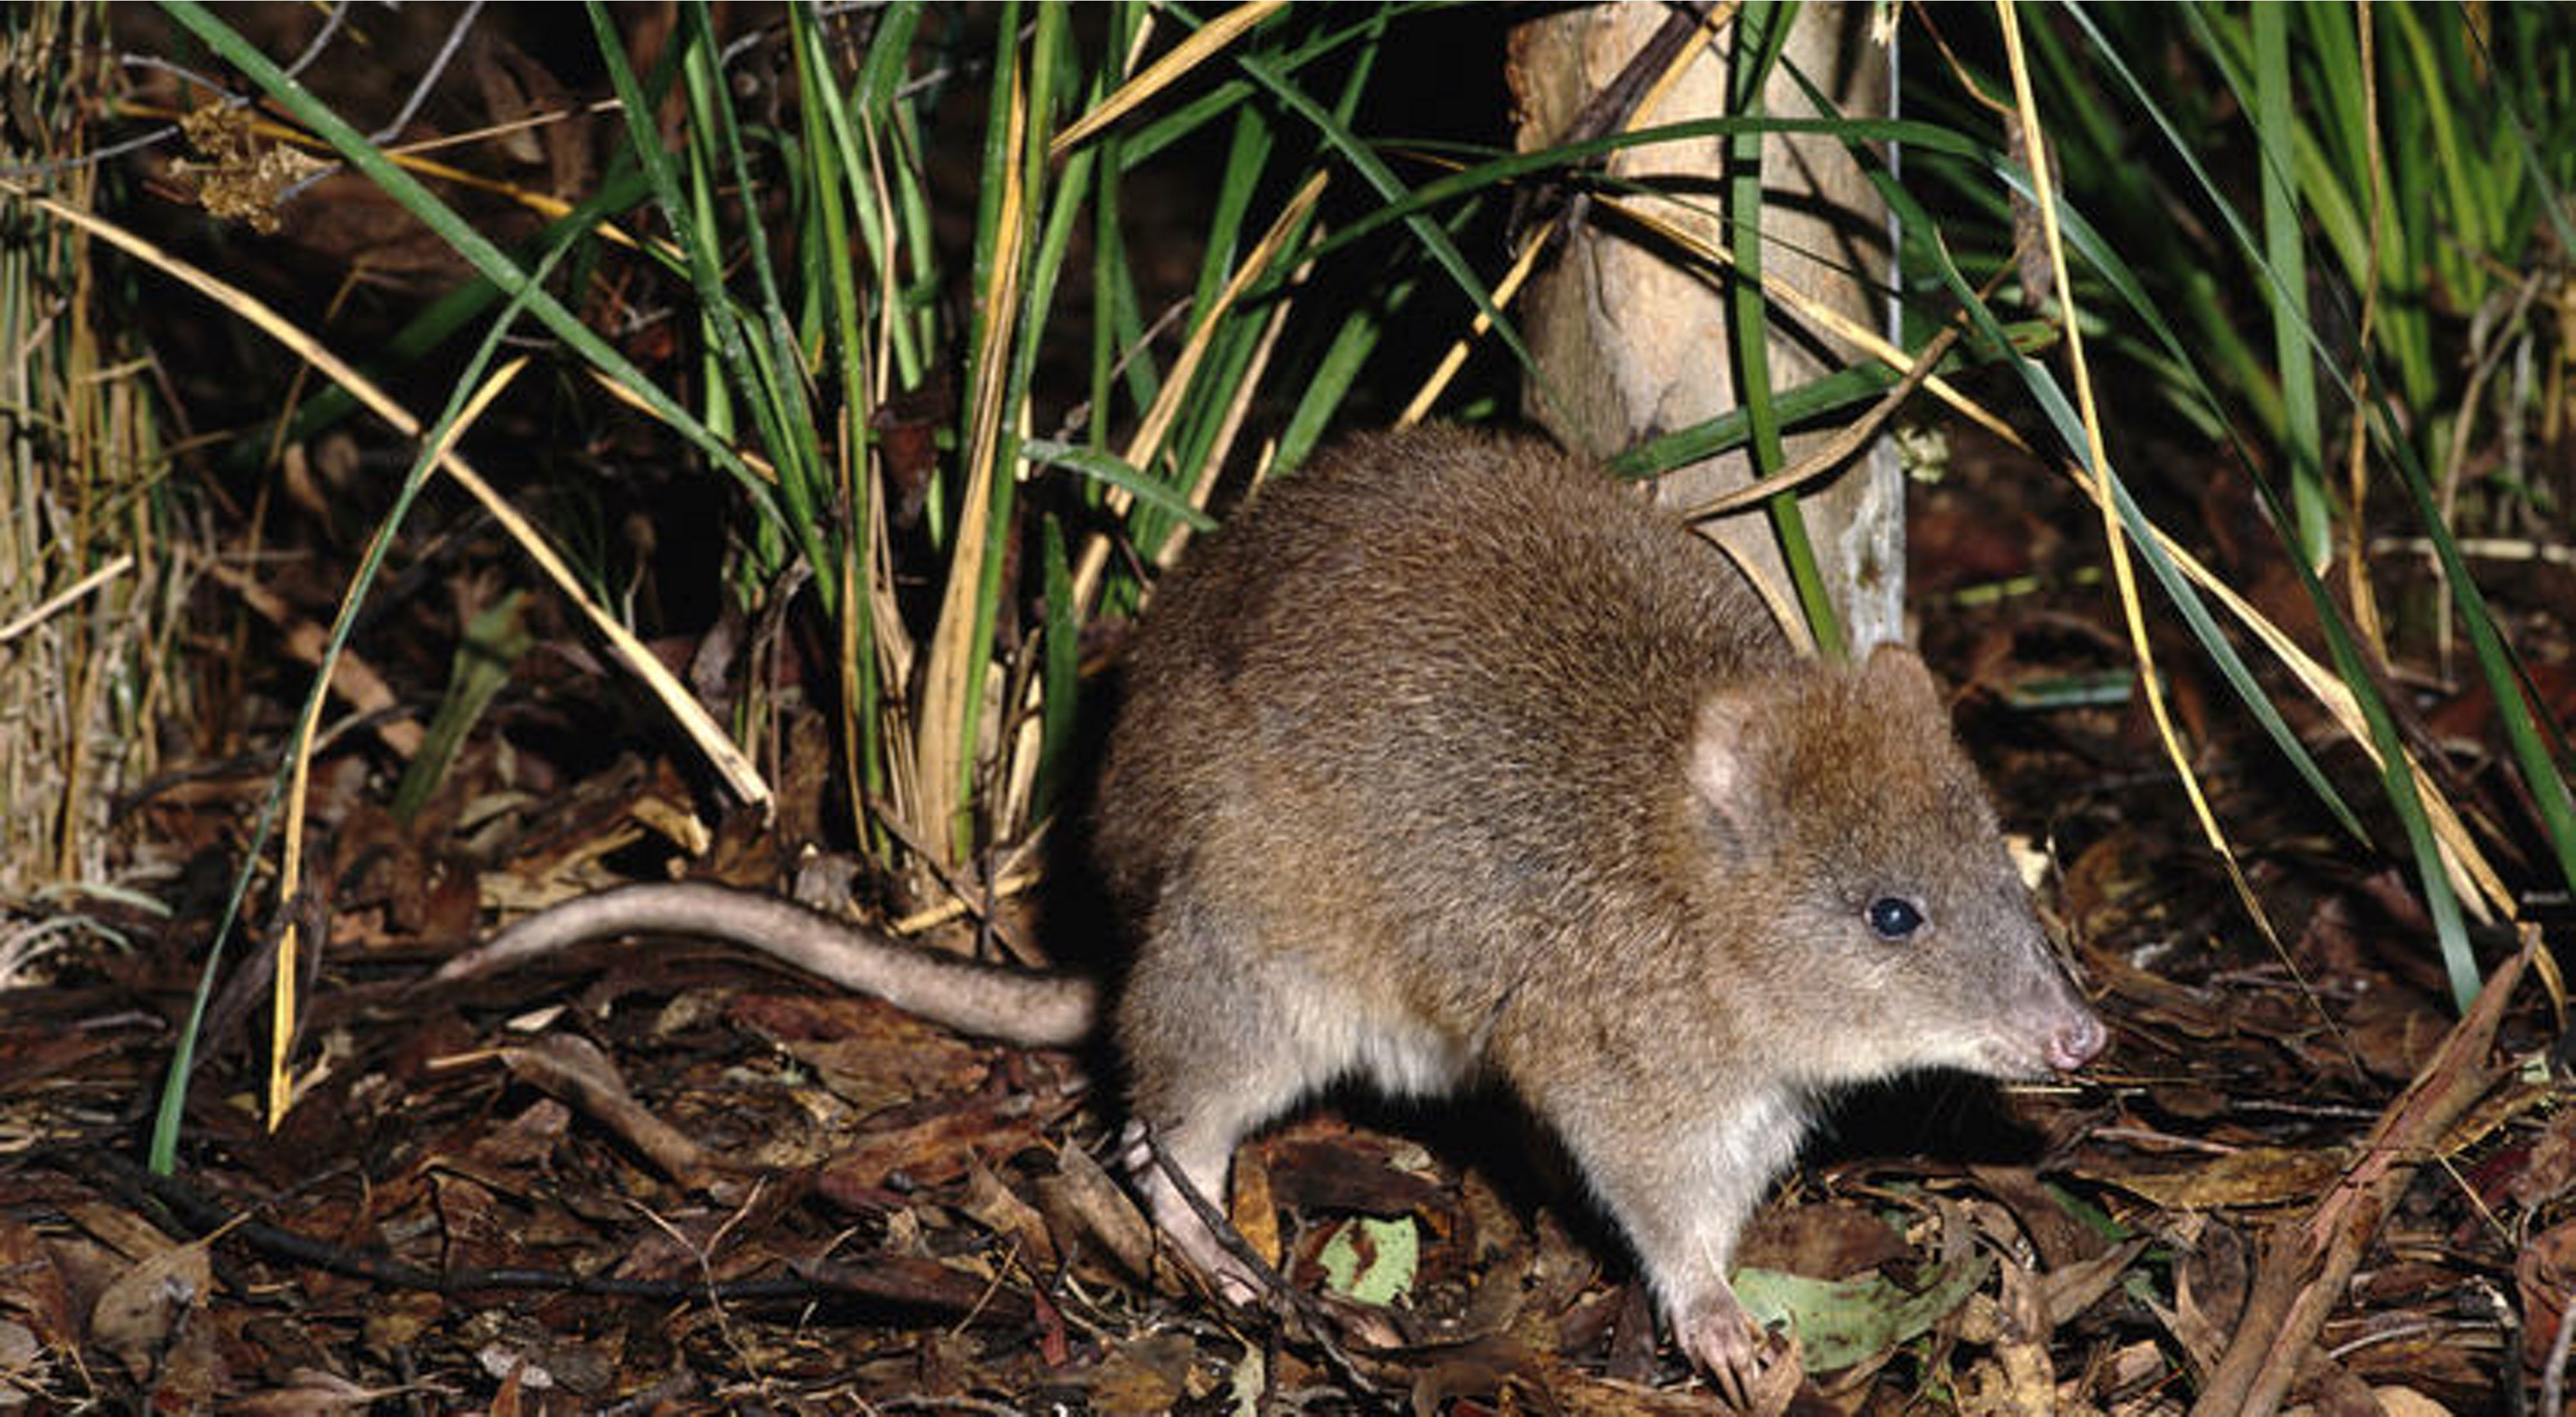 is Critically Endangered. They have a small range in Victoria's Gippsland region and southern NSW.